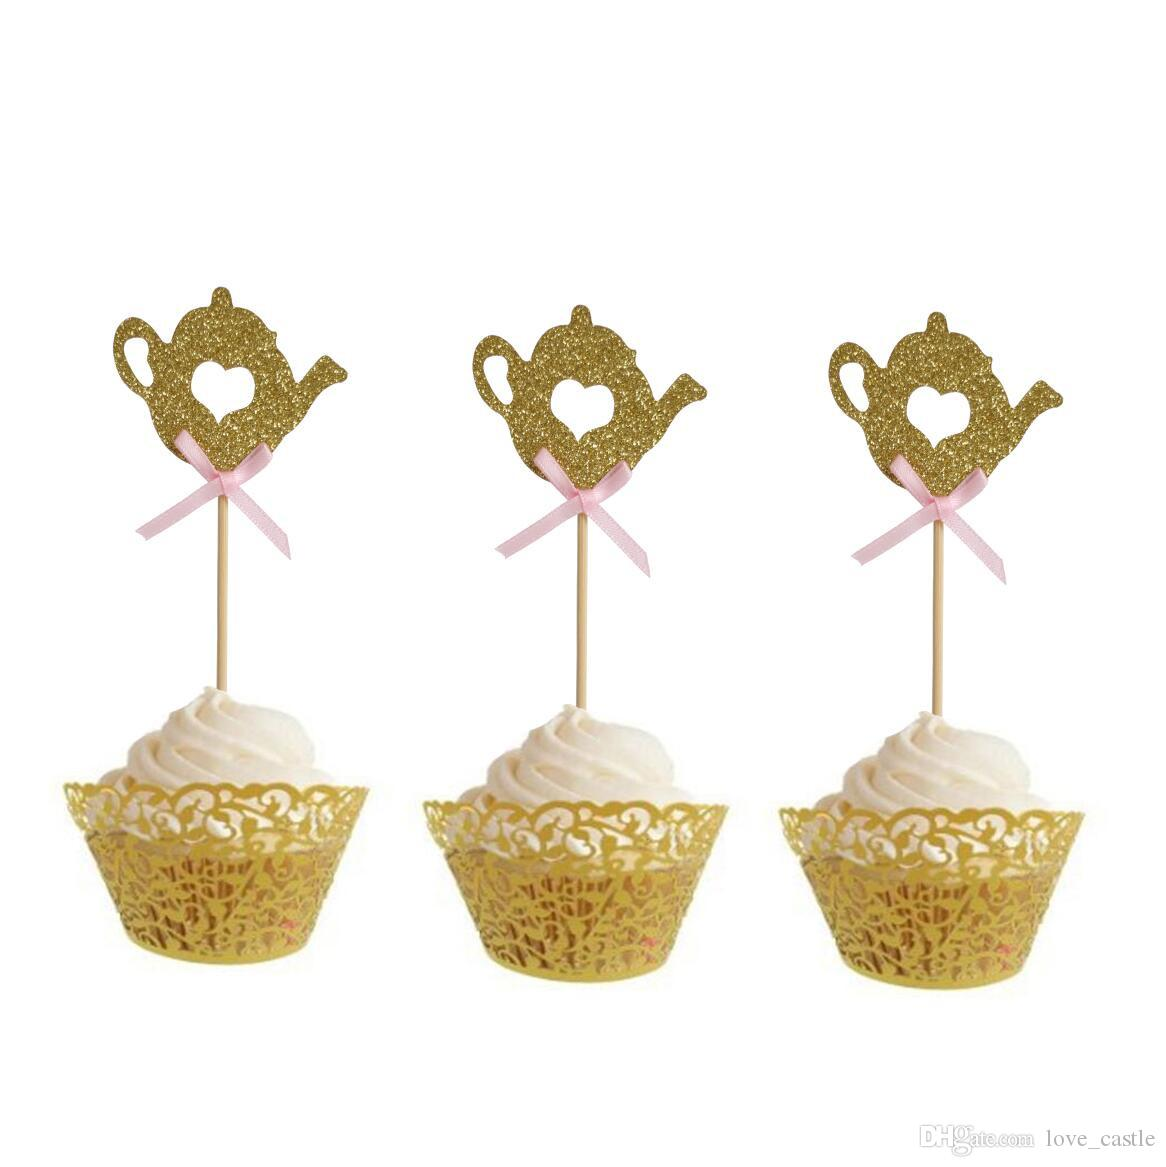 50pcs Golden Teapot Cake Toppers Baby Shower Cupcake Topper Cake Decorations Party Decorations Supplies